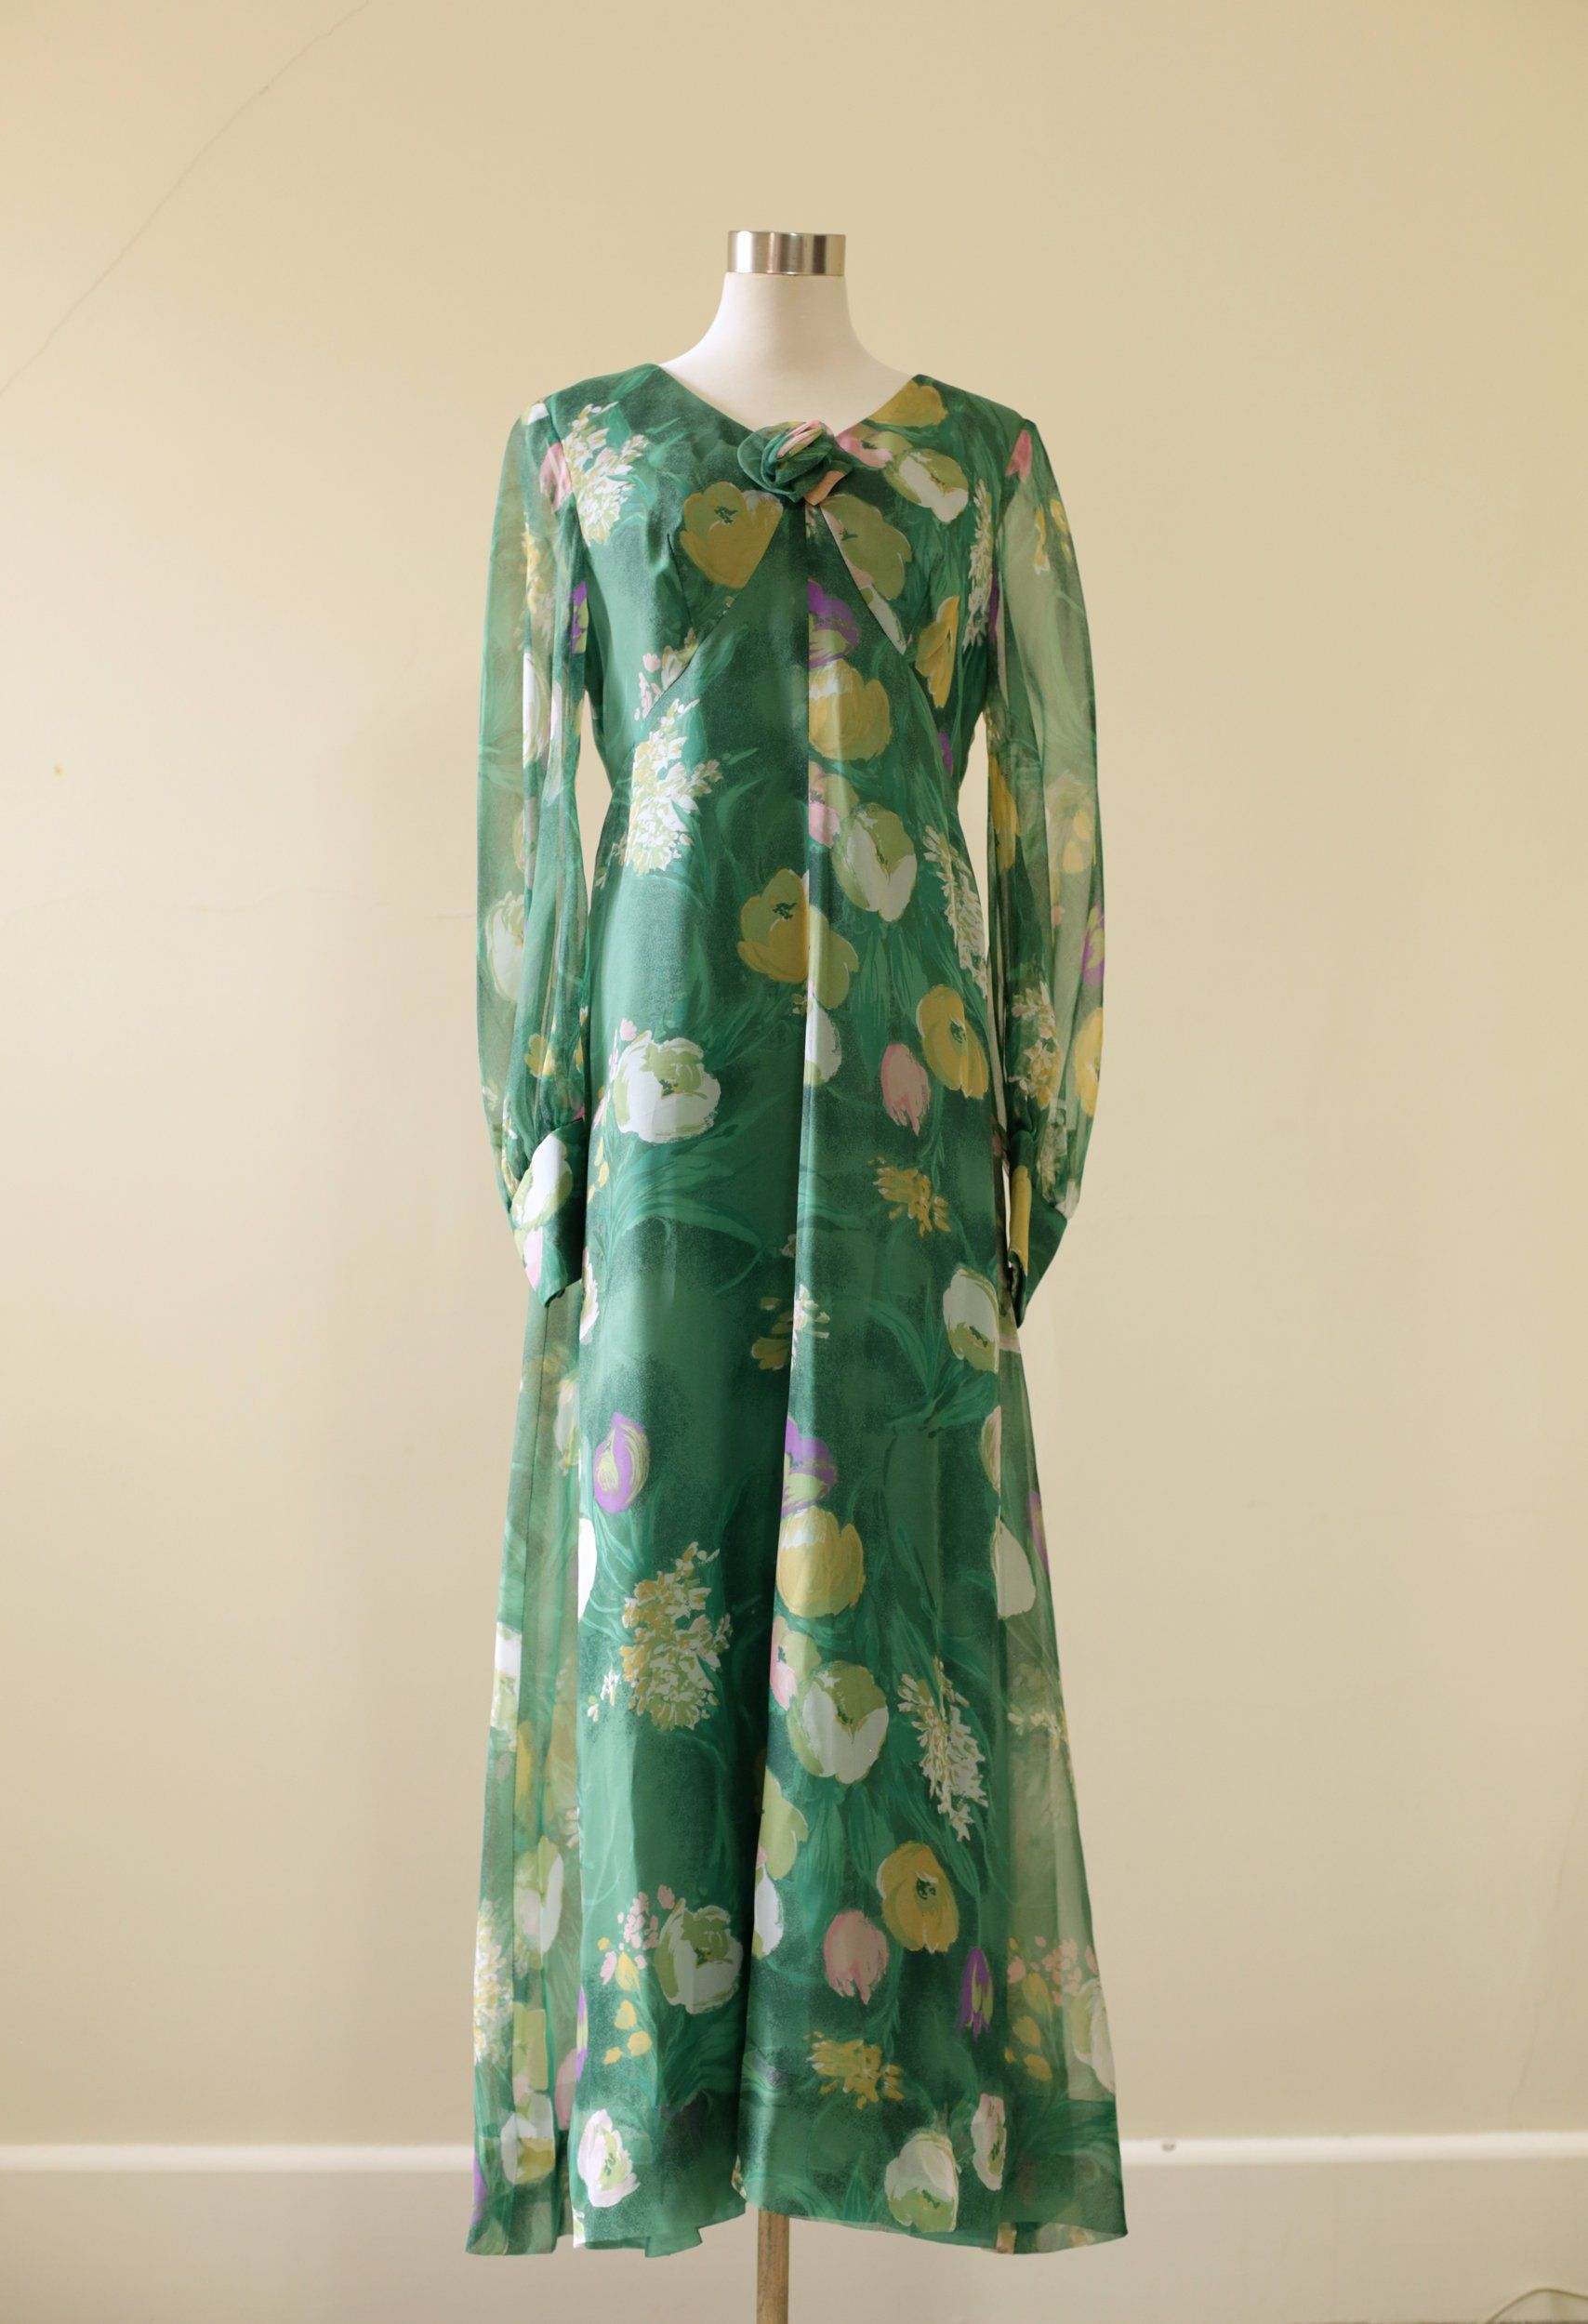 Vintage Green Floral 70s Maxi Dress With Rose Detail Front And Etsy 70s Maxi Dress Dresses Maxi Dress [ 2500 x 1708 Pixel ]